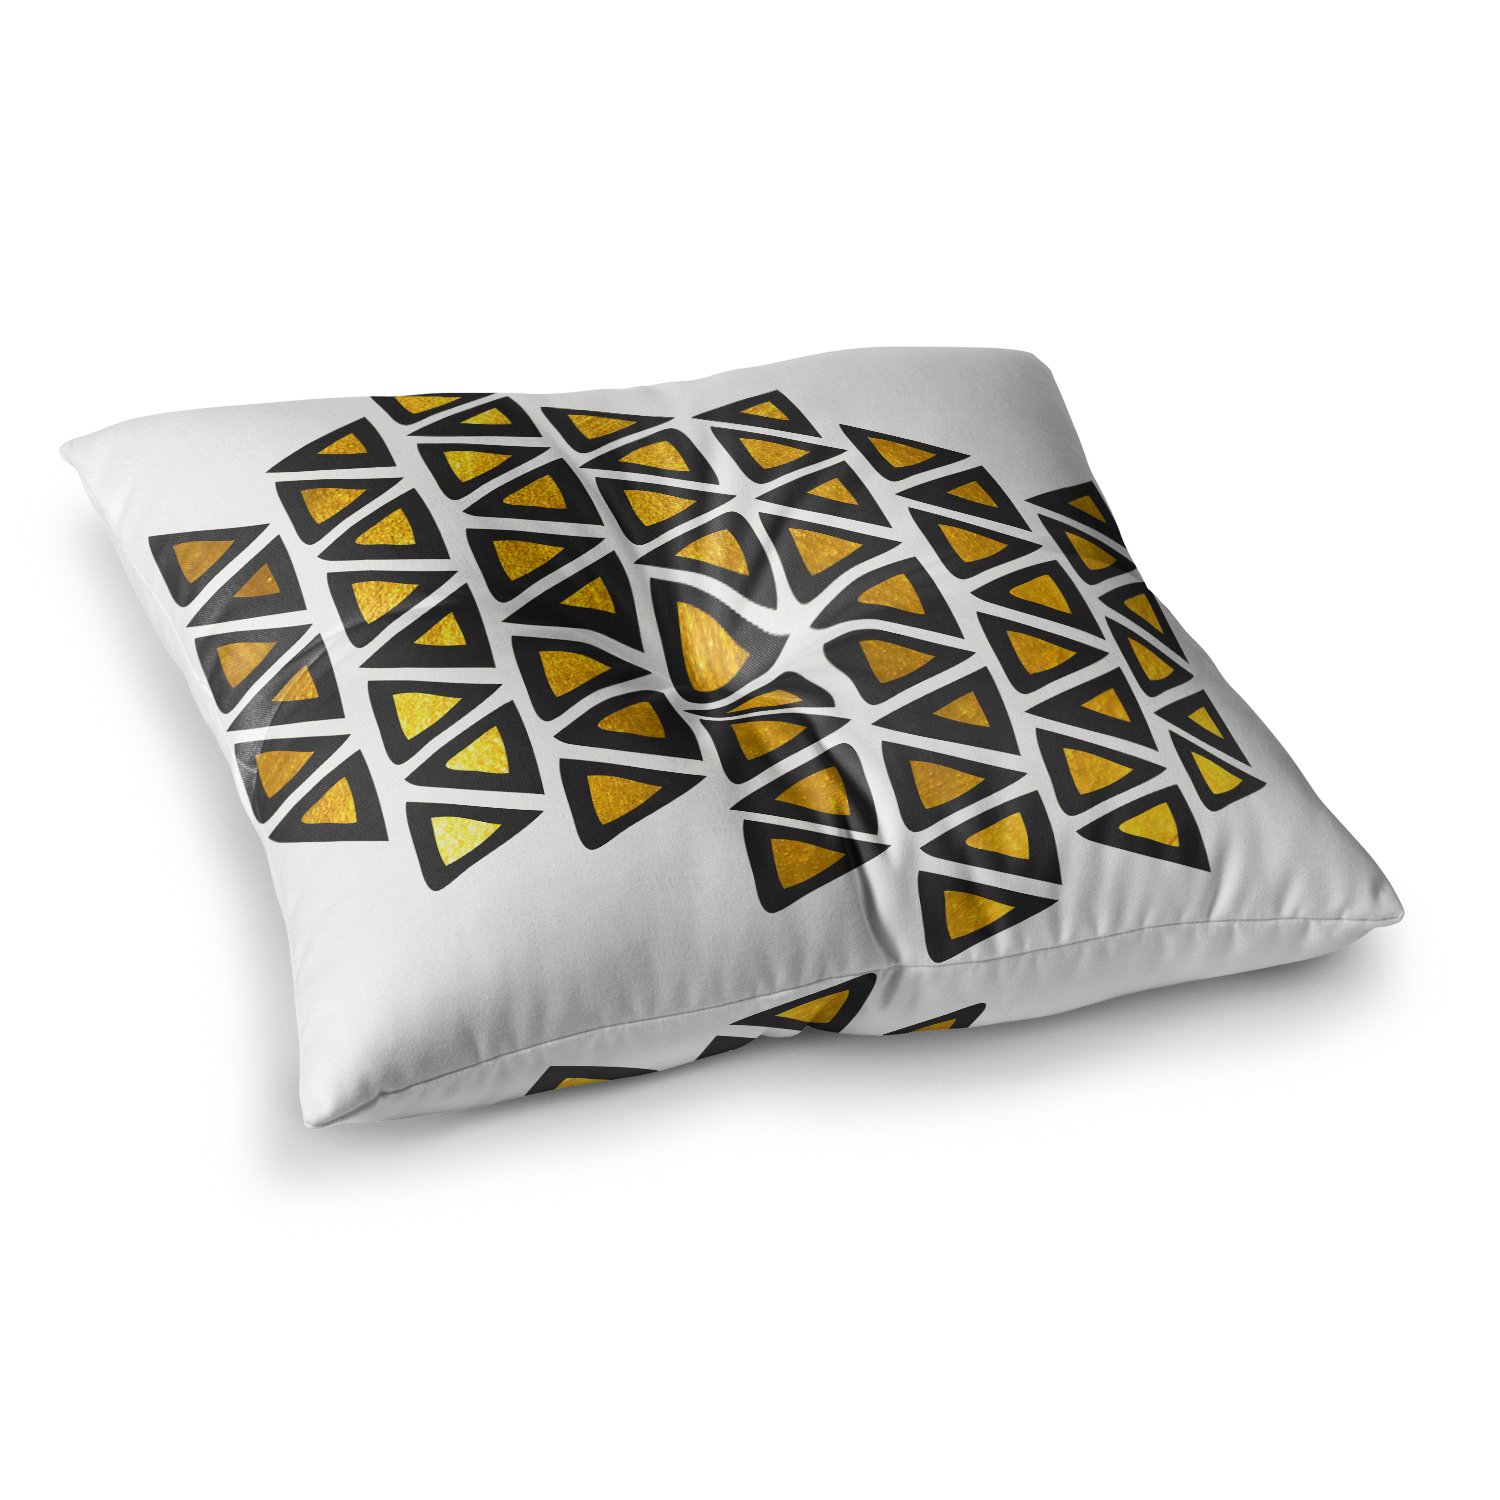 26 x 26 Square Floor Pillow Kess InHouse Pom Graphic Design Heal with Love Green Gold Illustration